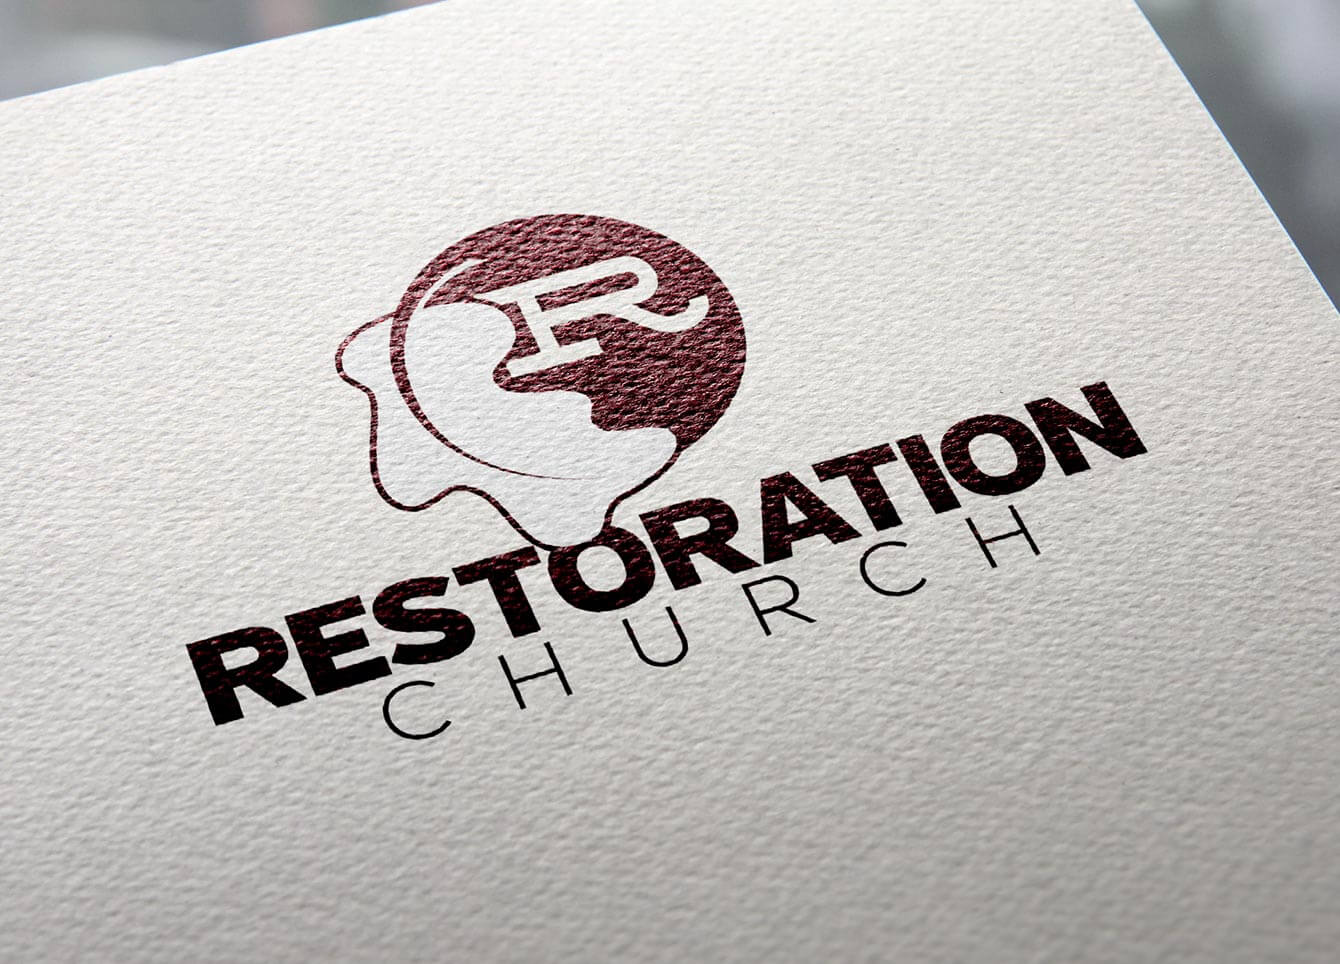 Restoration Church